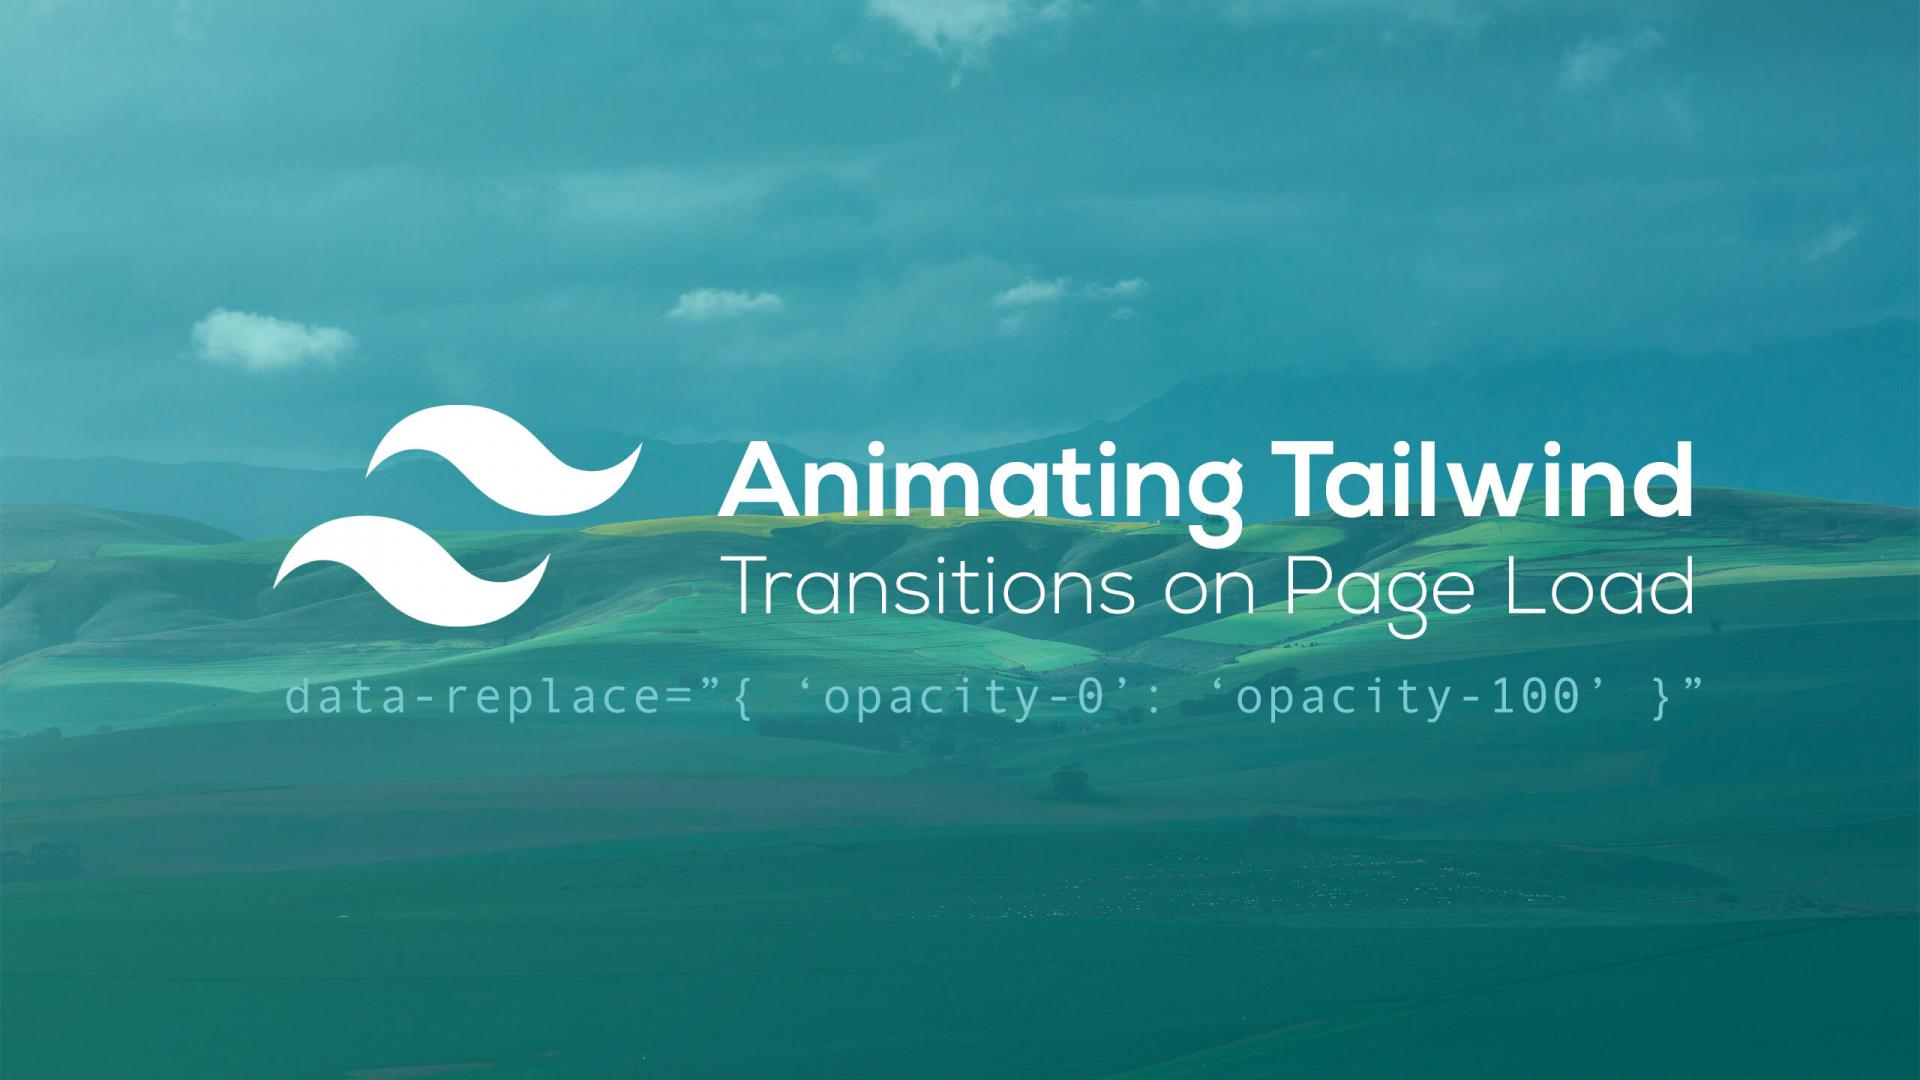 Animating Tailwind Transitions on Page Load